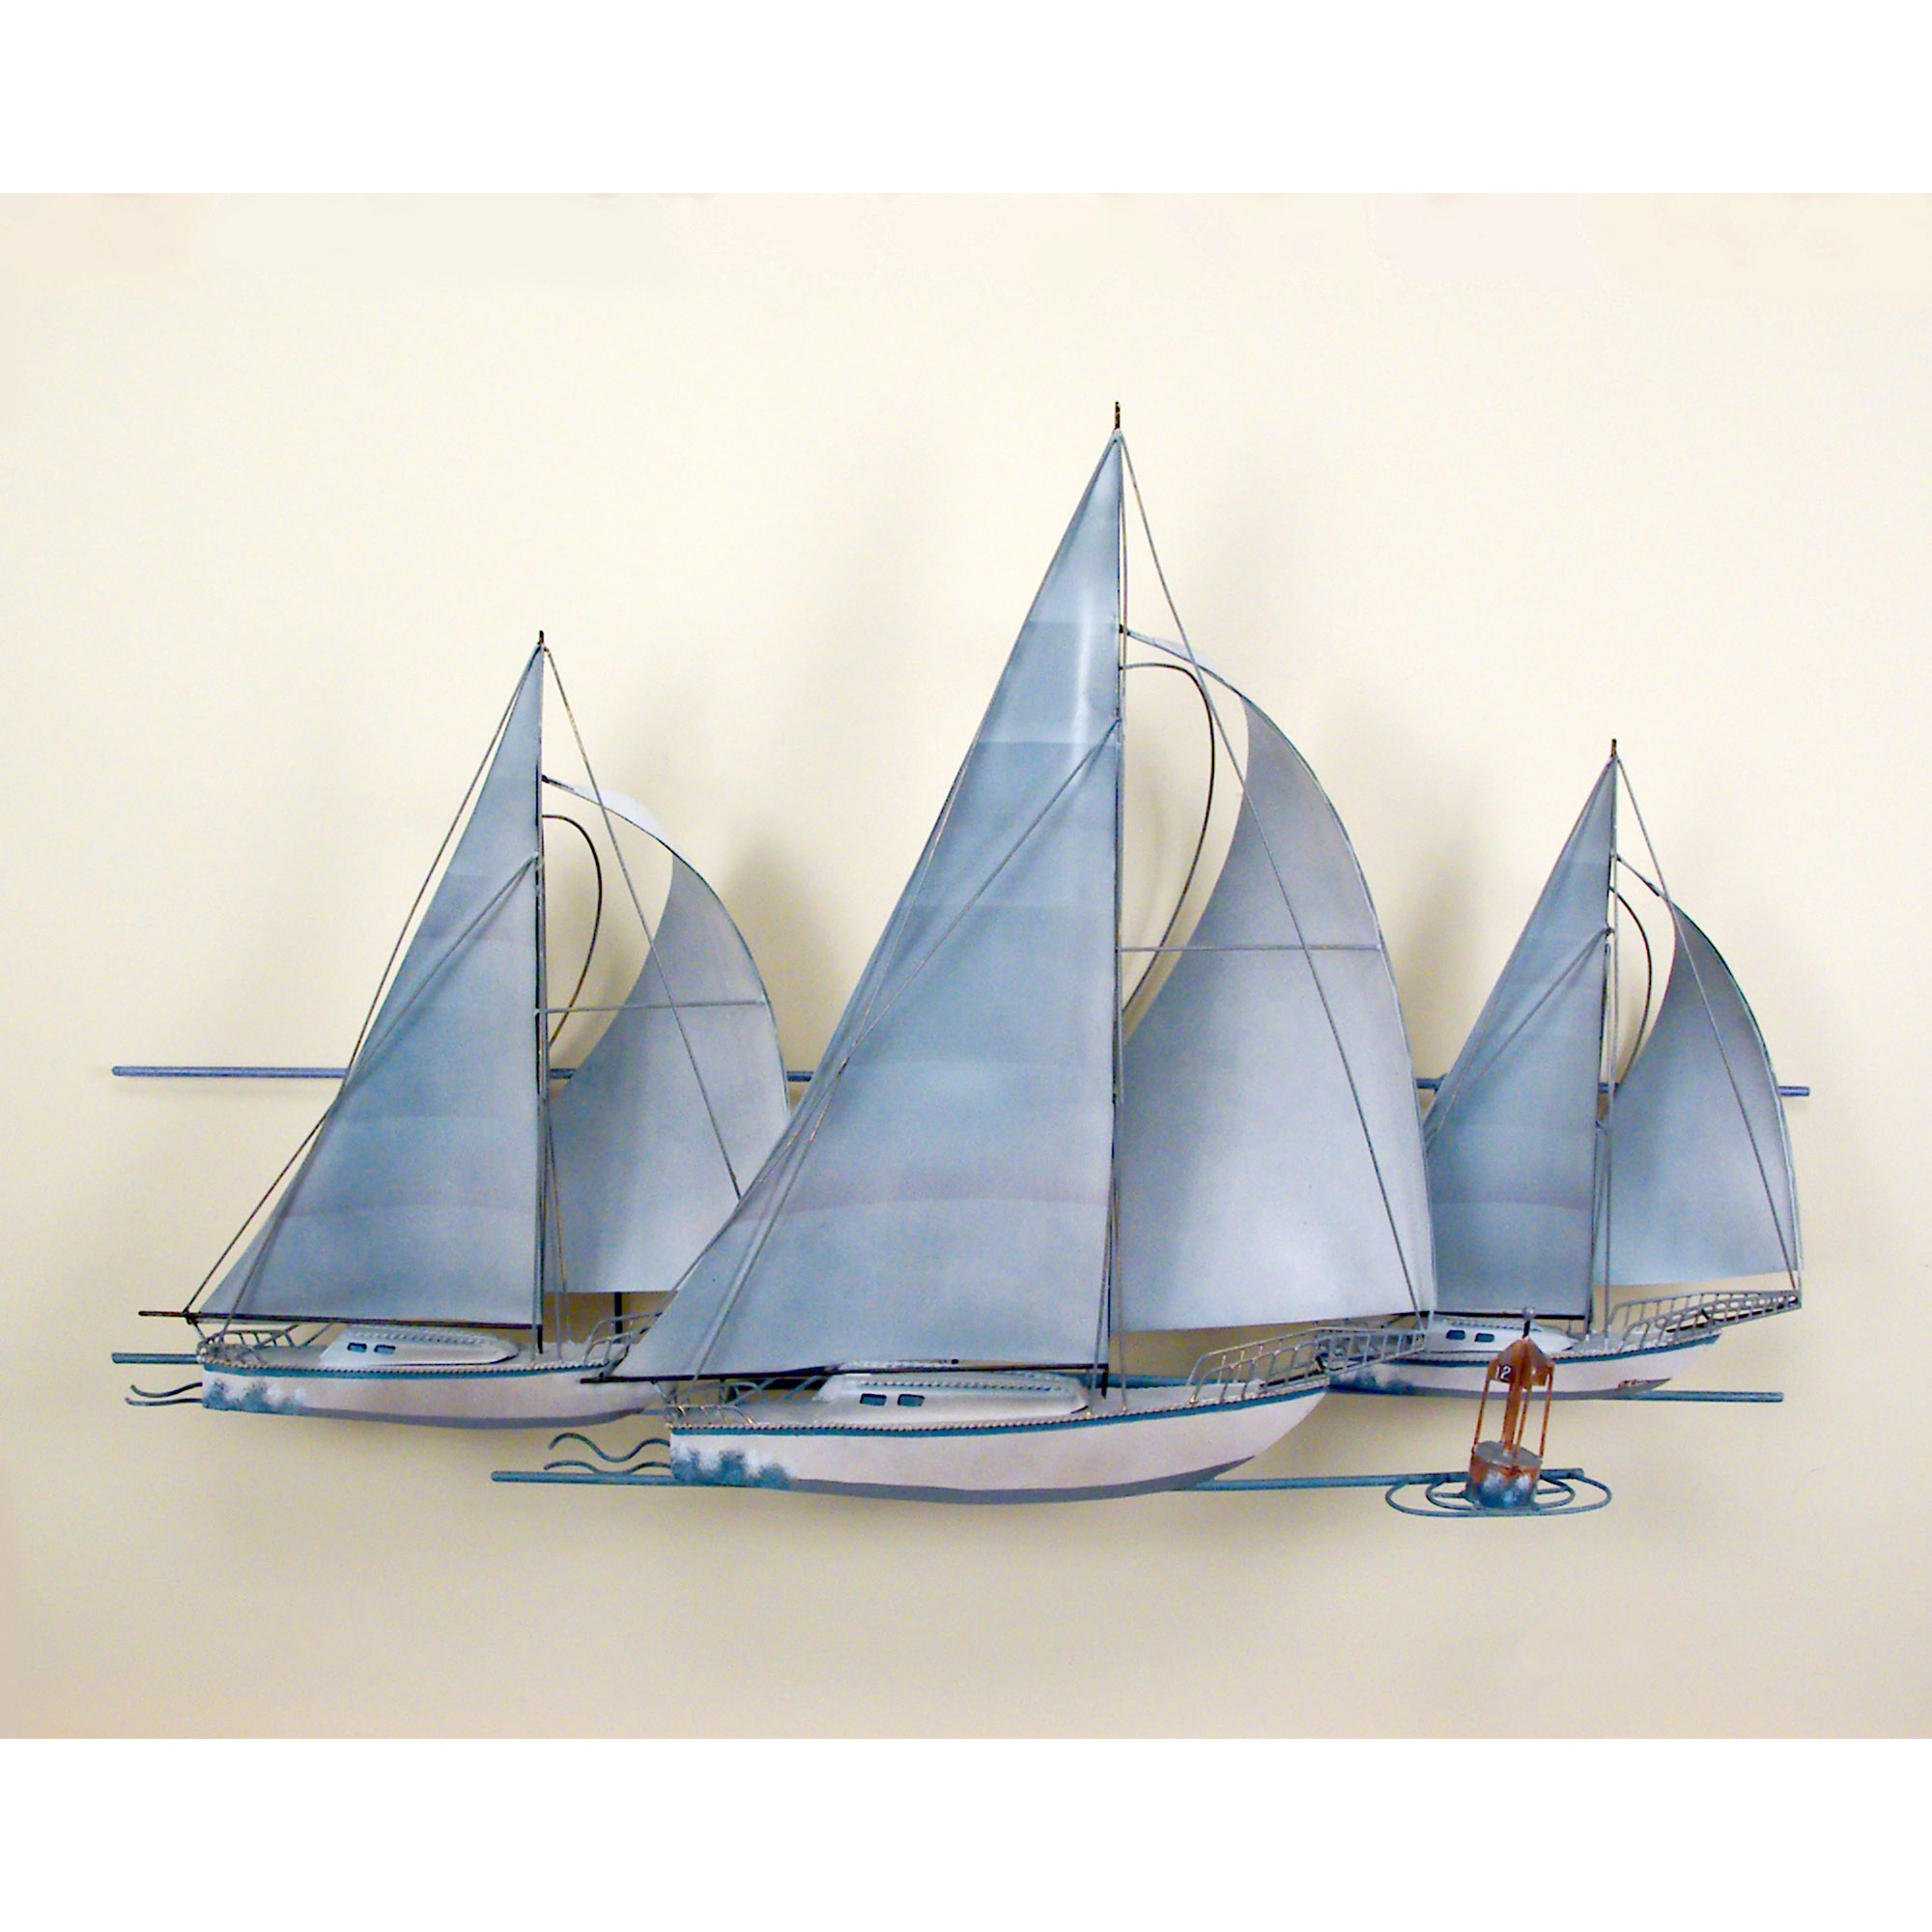 Well known At The Races,Three Sail Boats, Race, Wall Art, Wall Hanging YS37